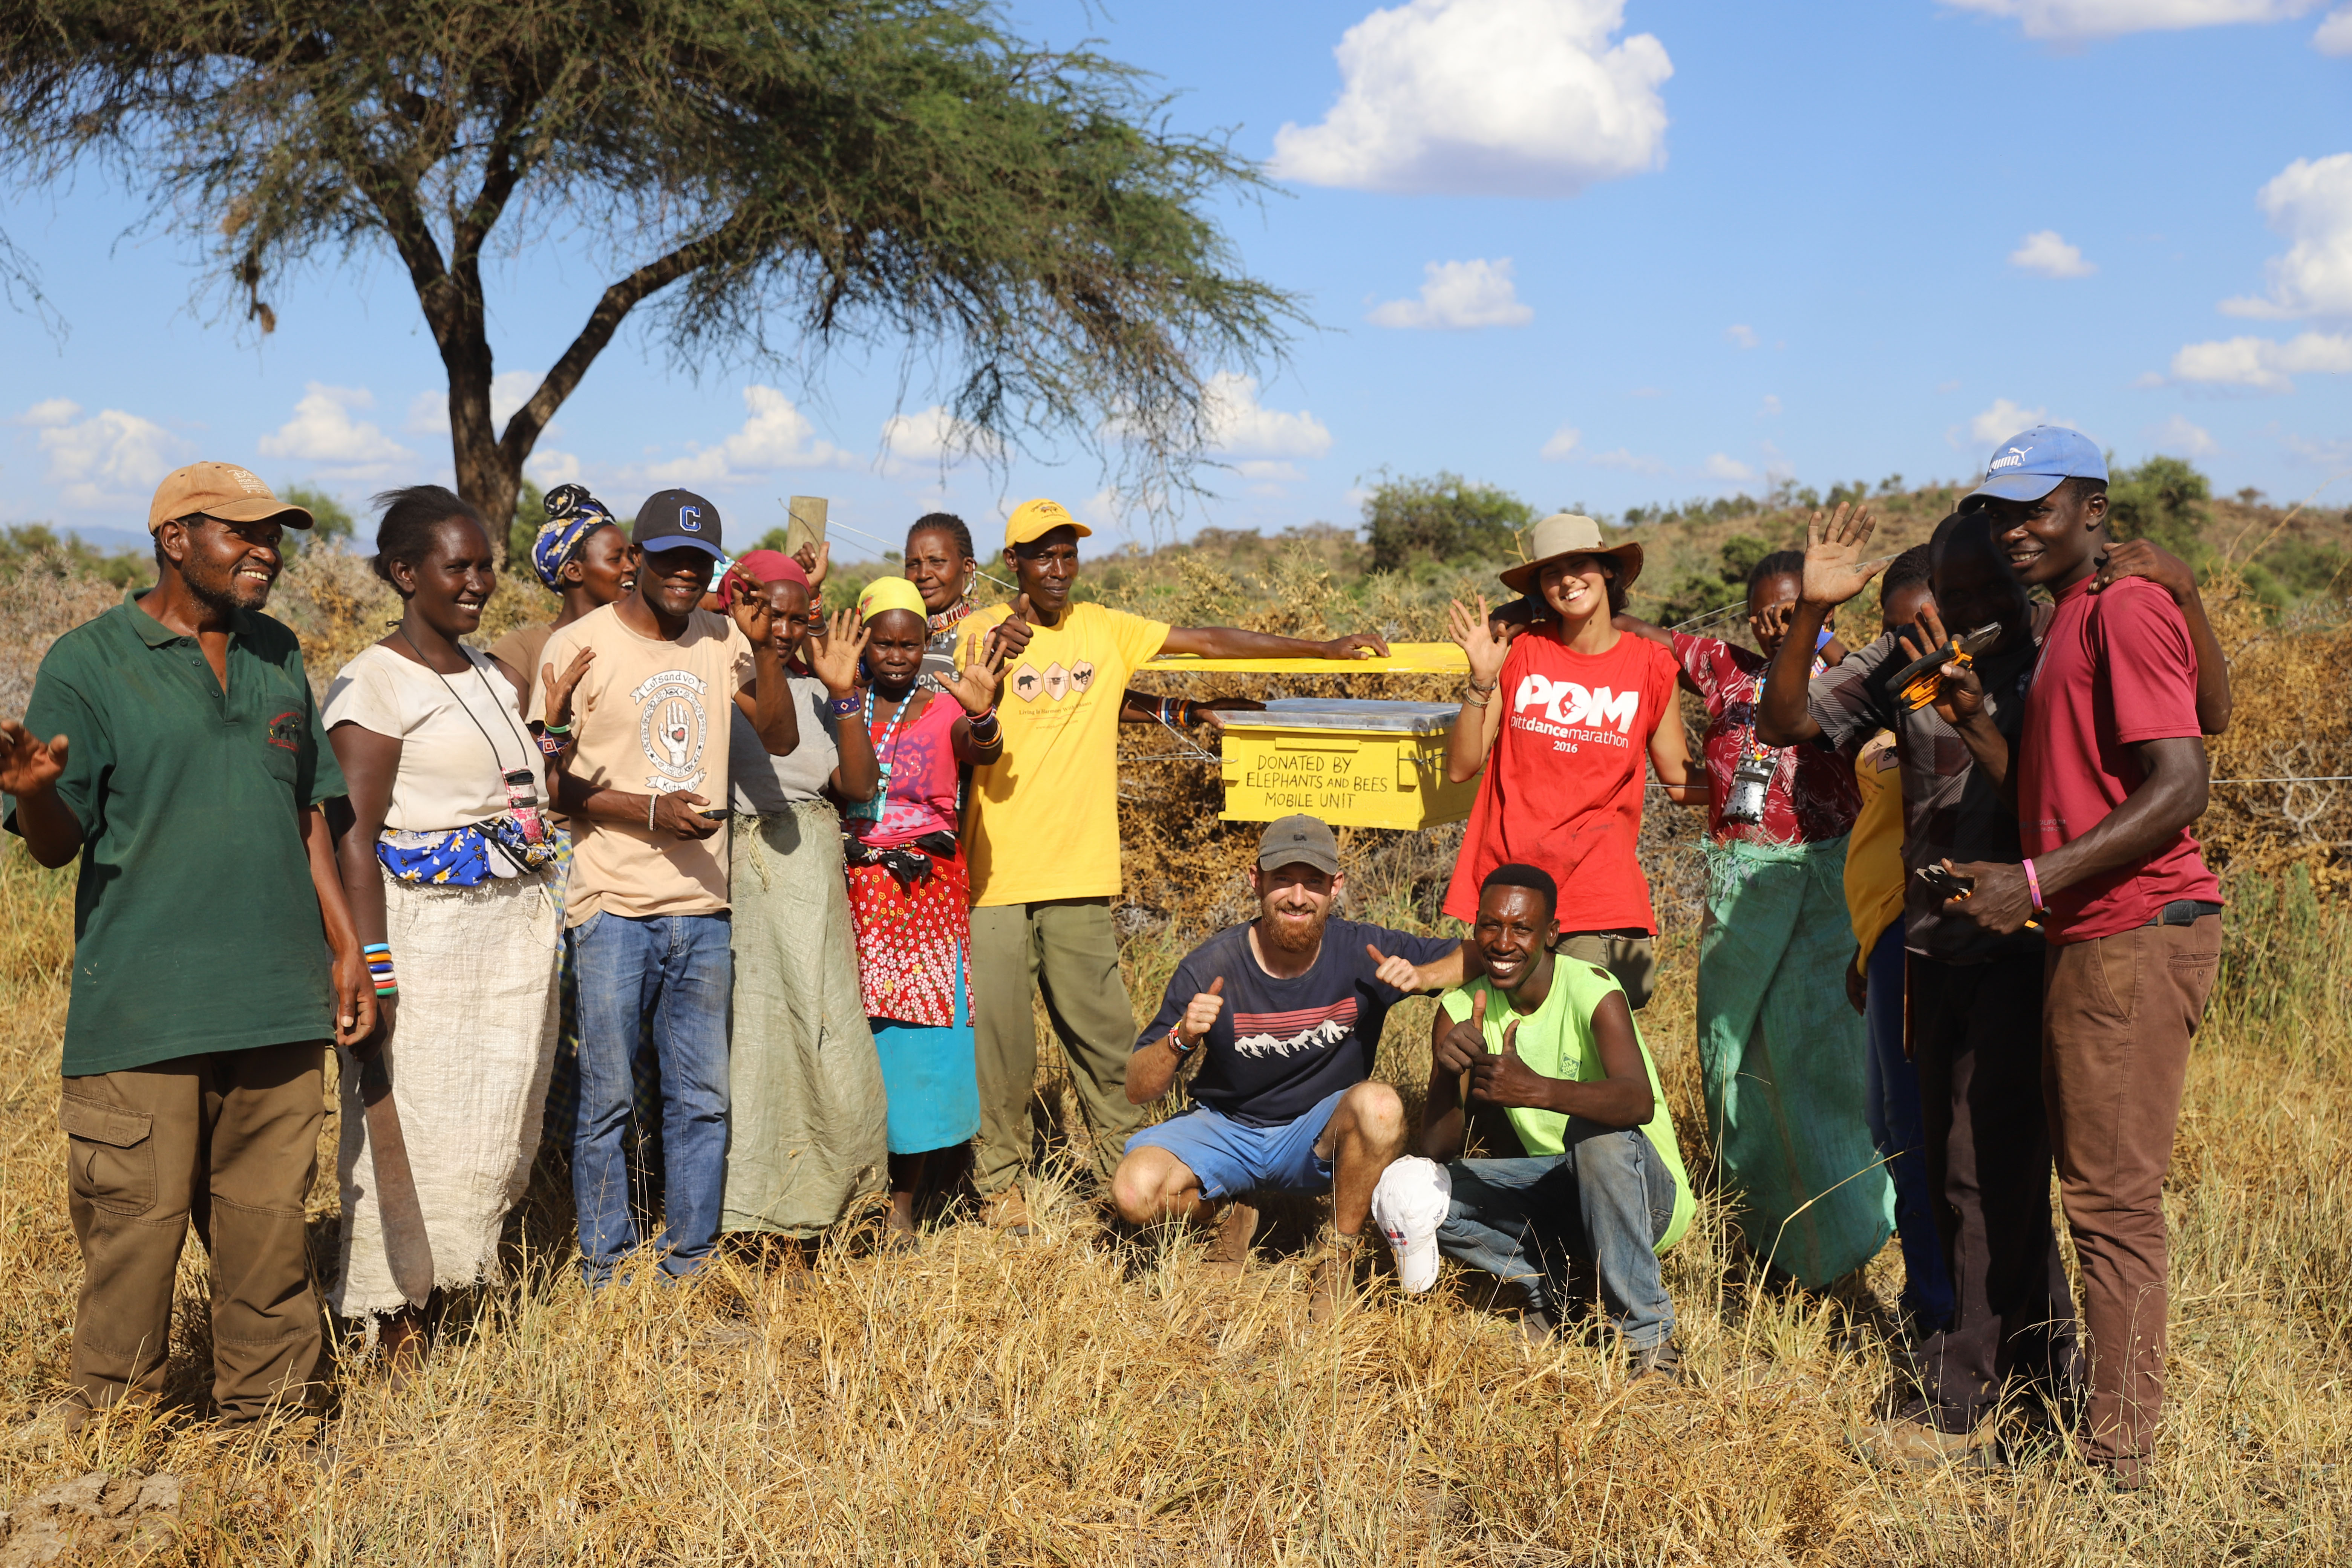 A-group-photo-next-to-a-beehive-fence-after-beehive-fence-construction-in-the-Chyulu-Hills_MWCT12-©-2019-Naiya-Raja